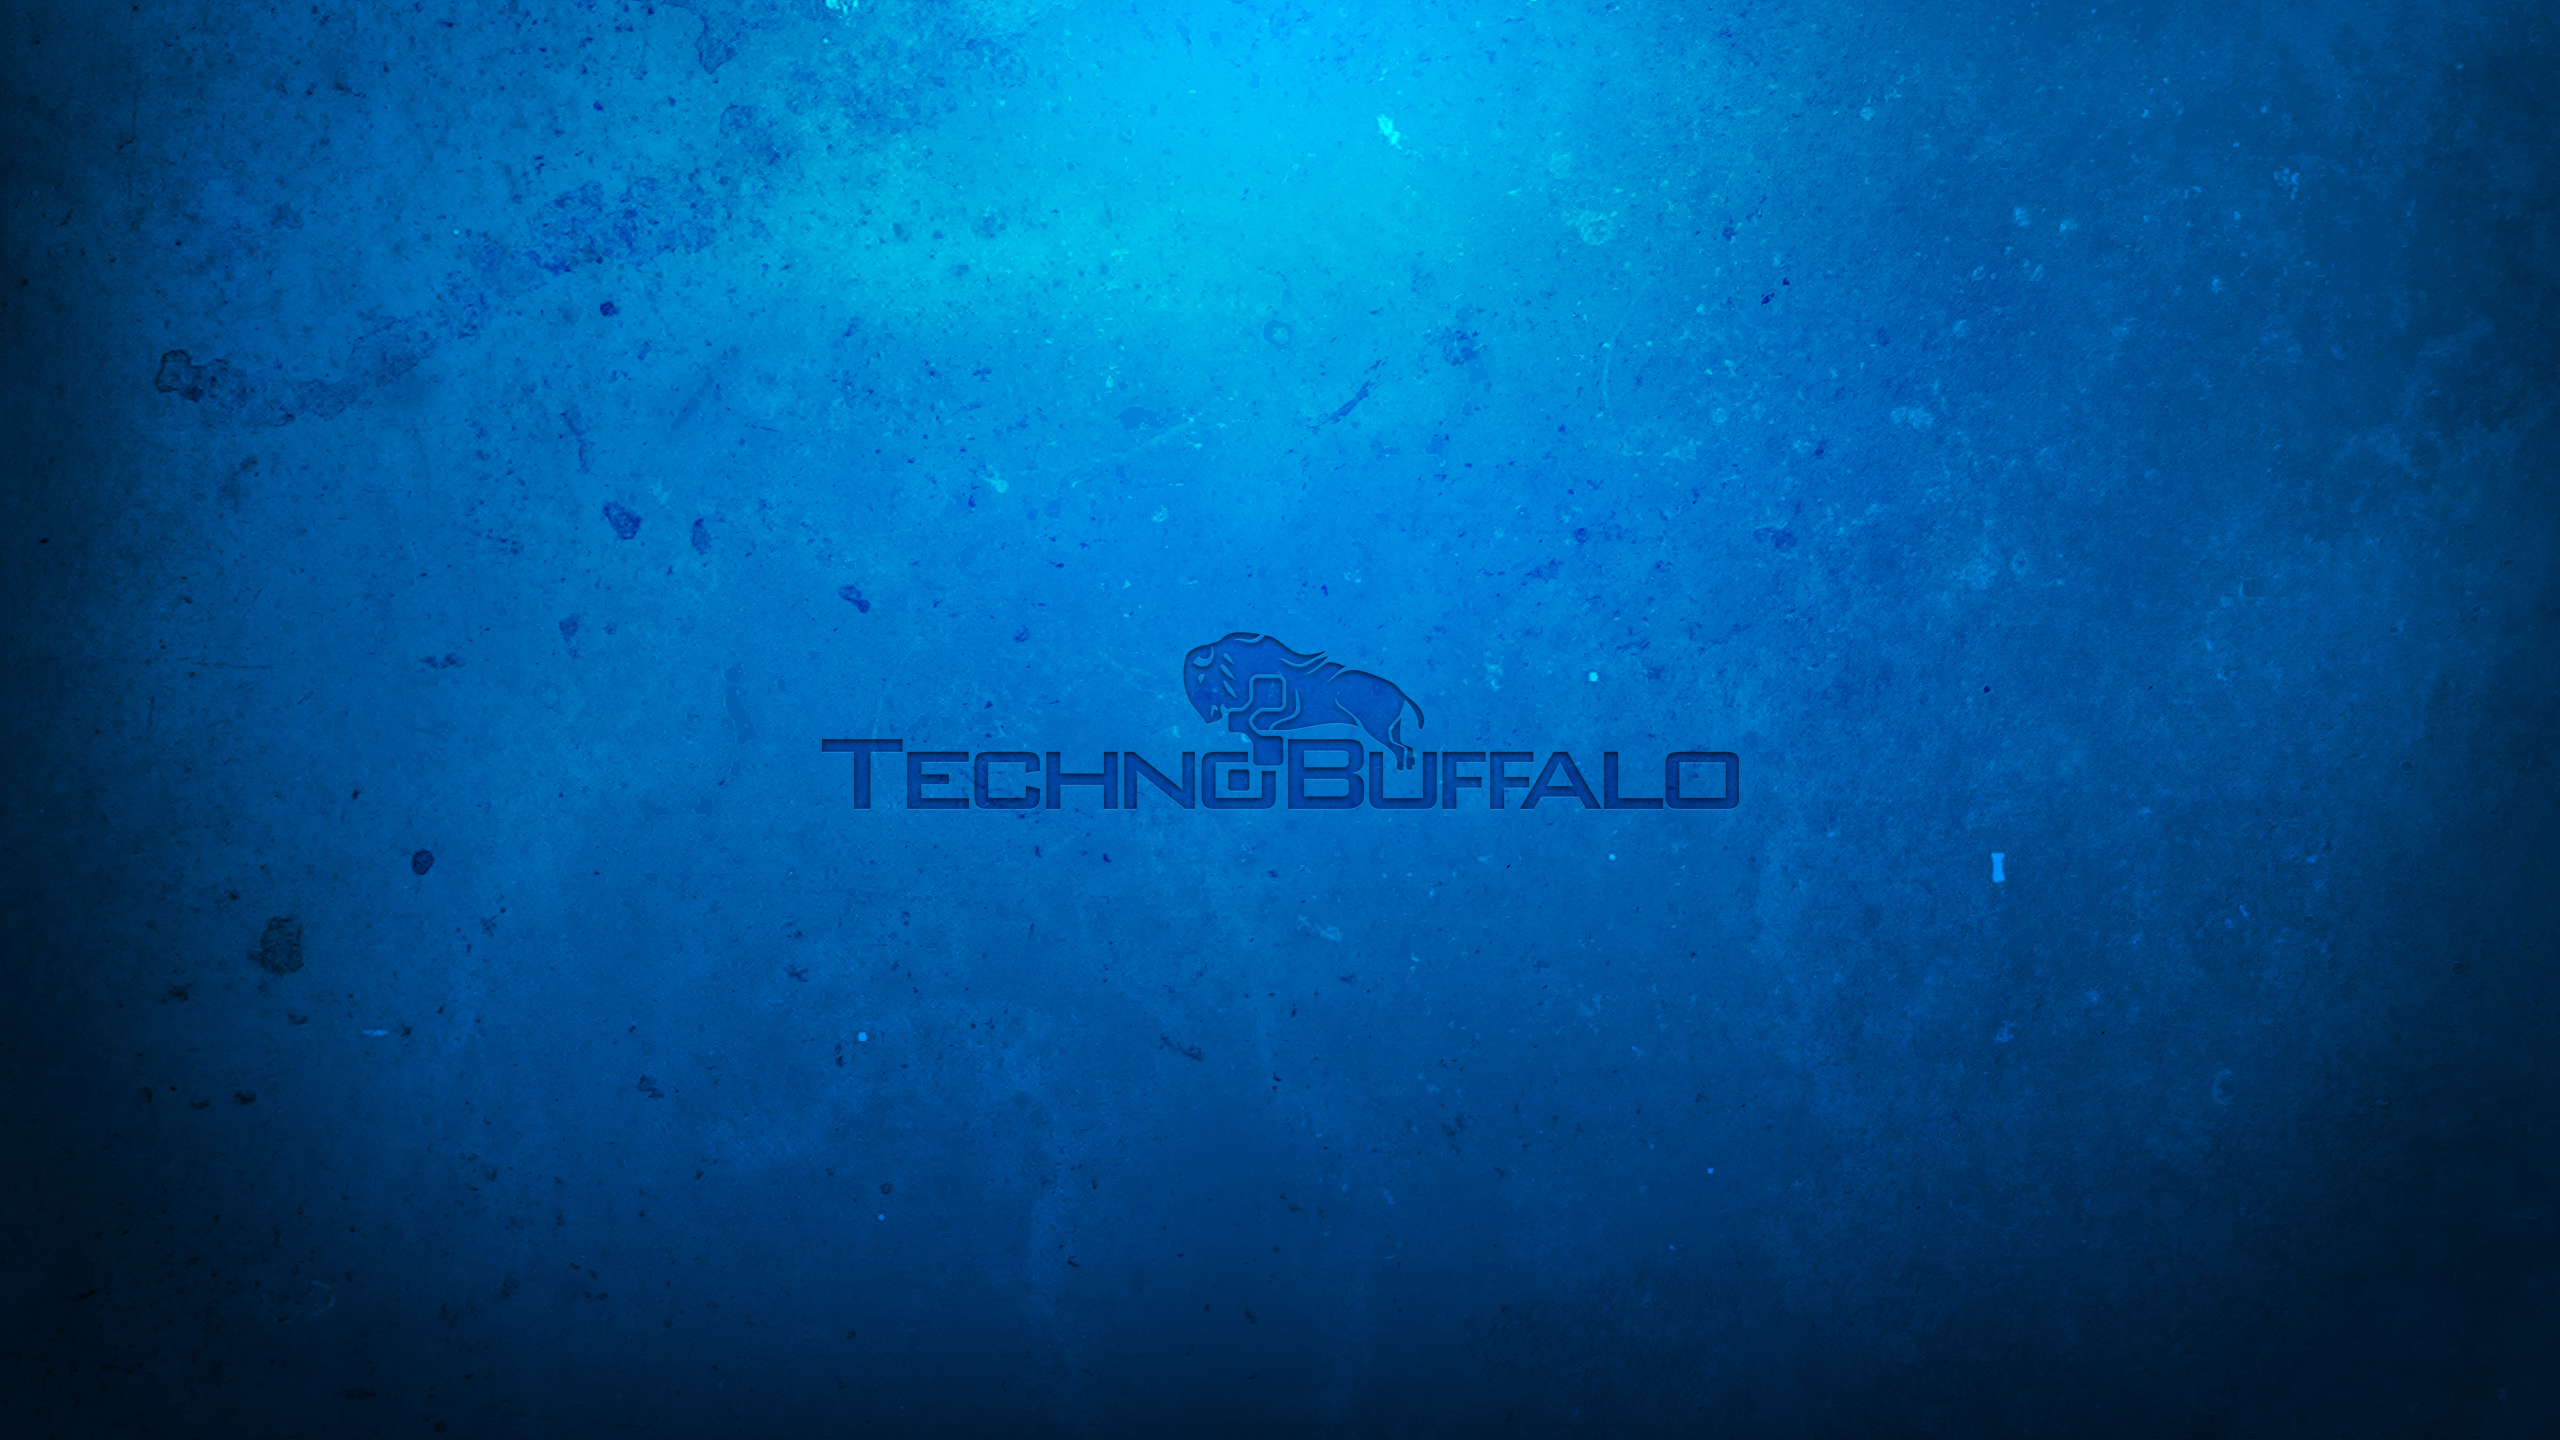 wallpaper technobuffalo blue wallpaper technobuffalo glow wallpaper 2560x1440